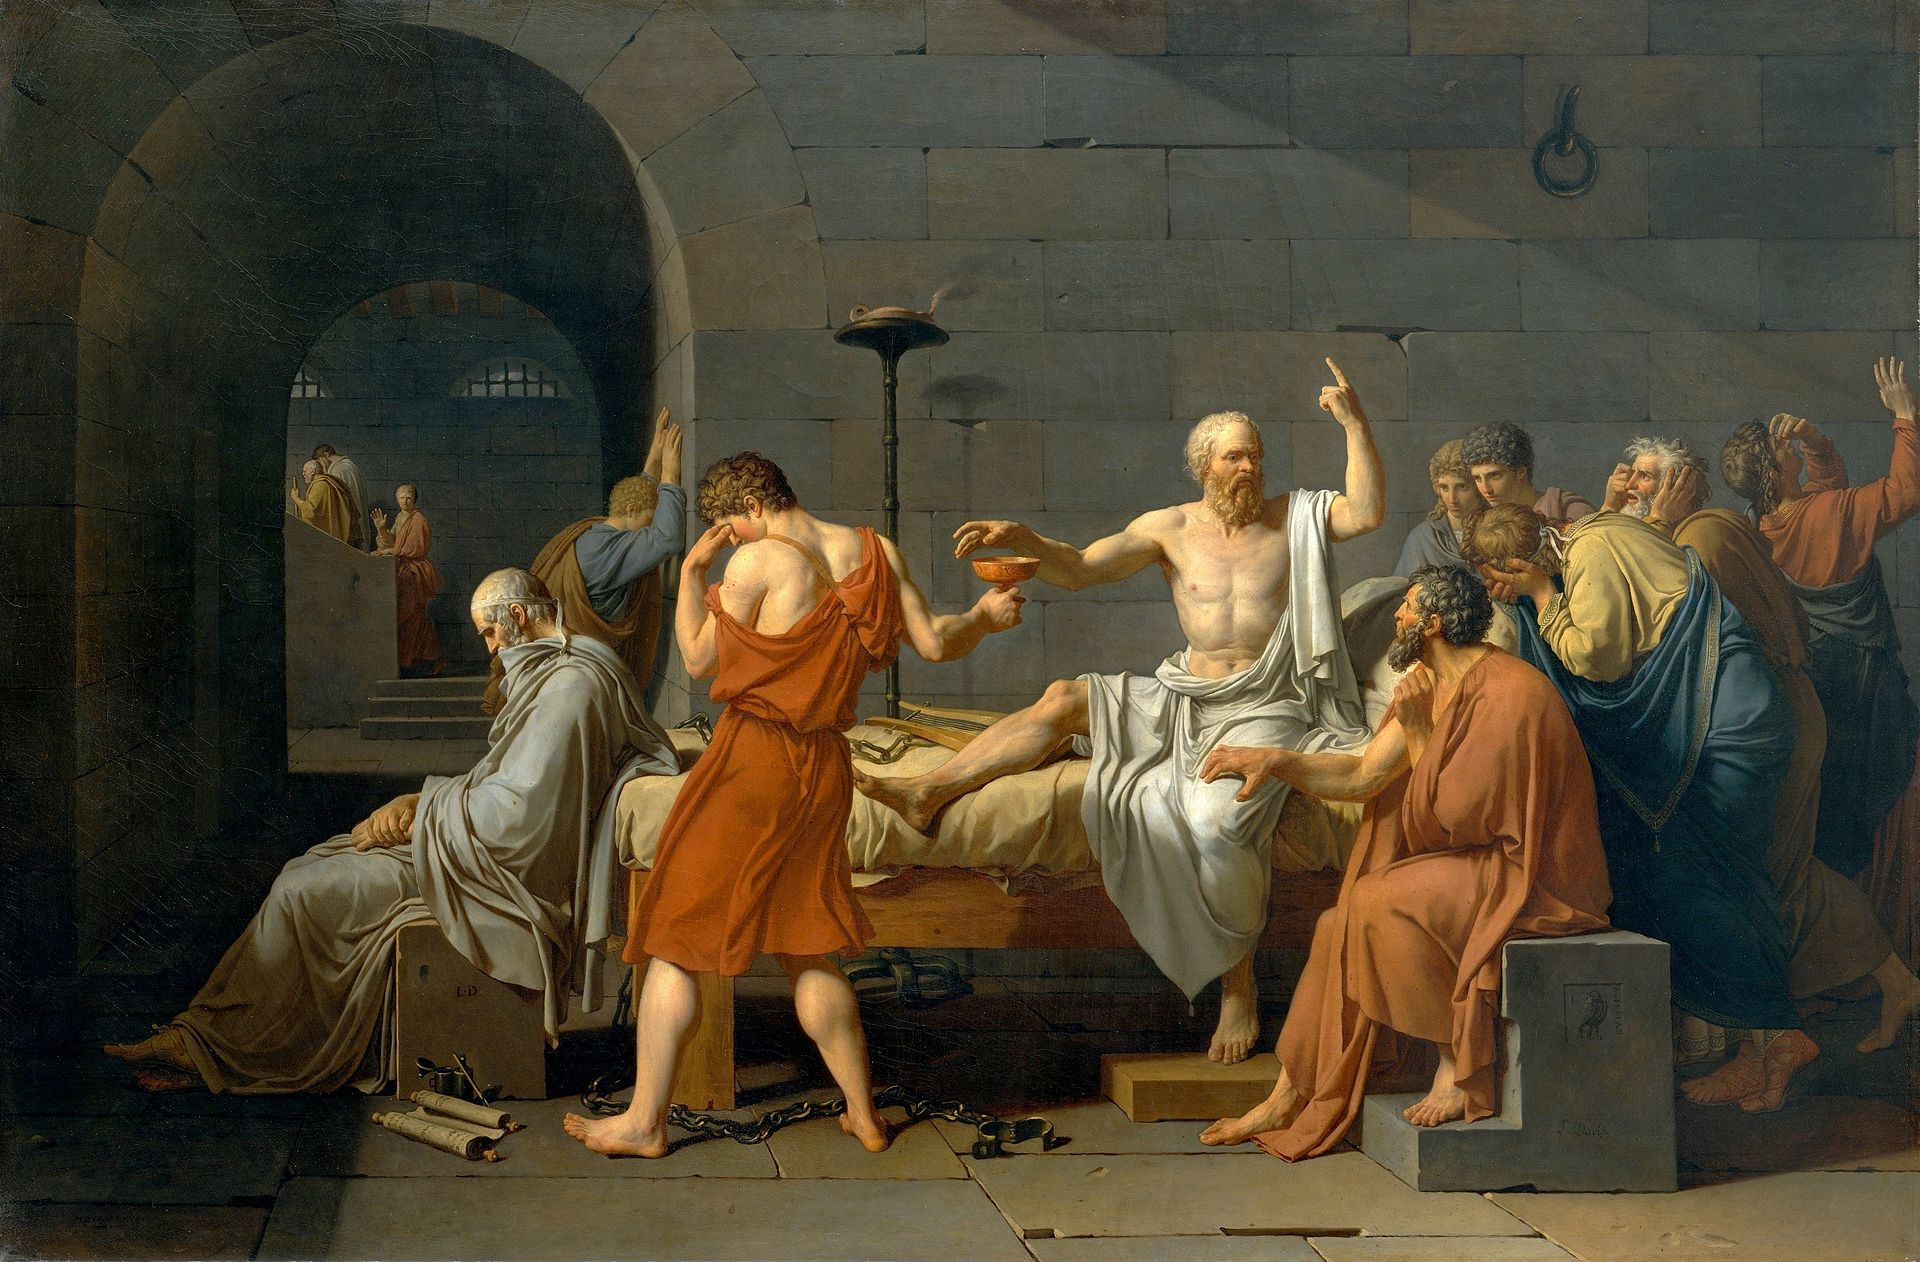 Think The Death of Socrates (French: La Mort de Socrate) is an oil on canvas painted by French painter Jacques-Louis David in 1787.